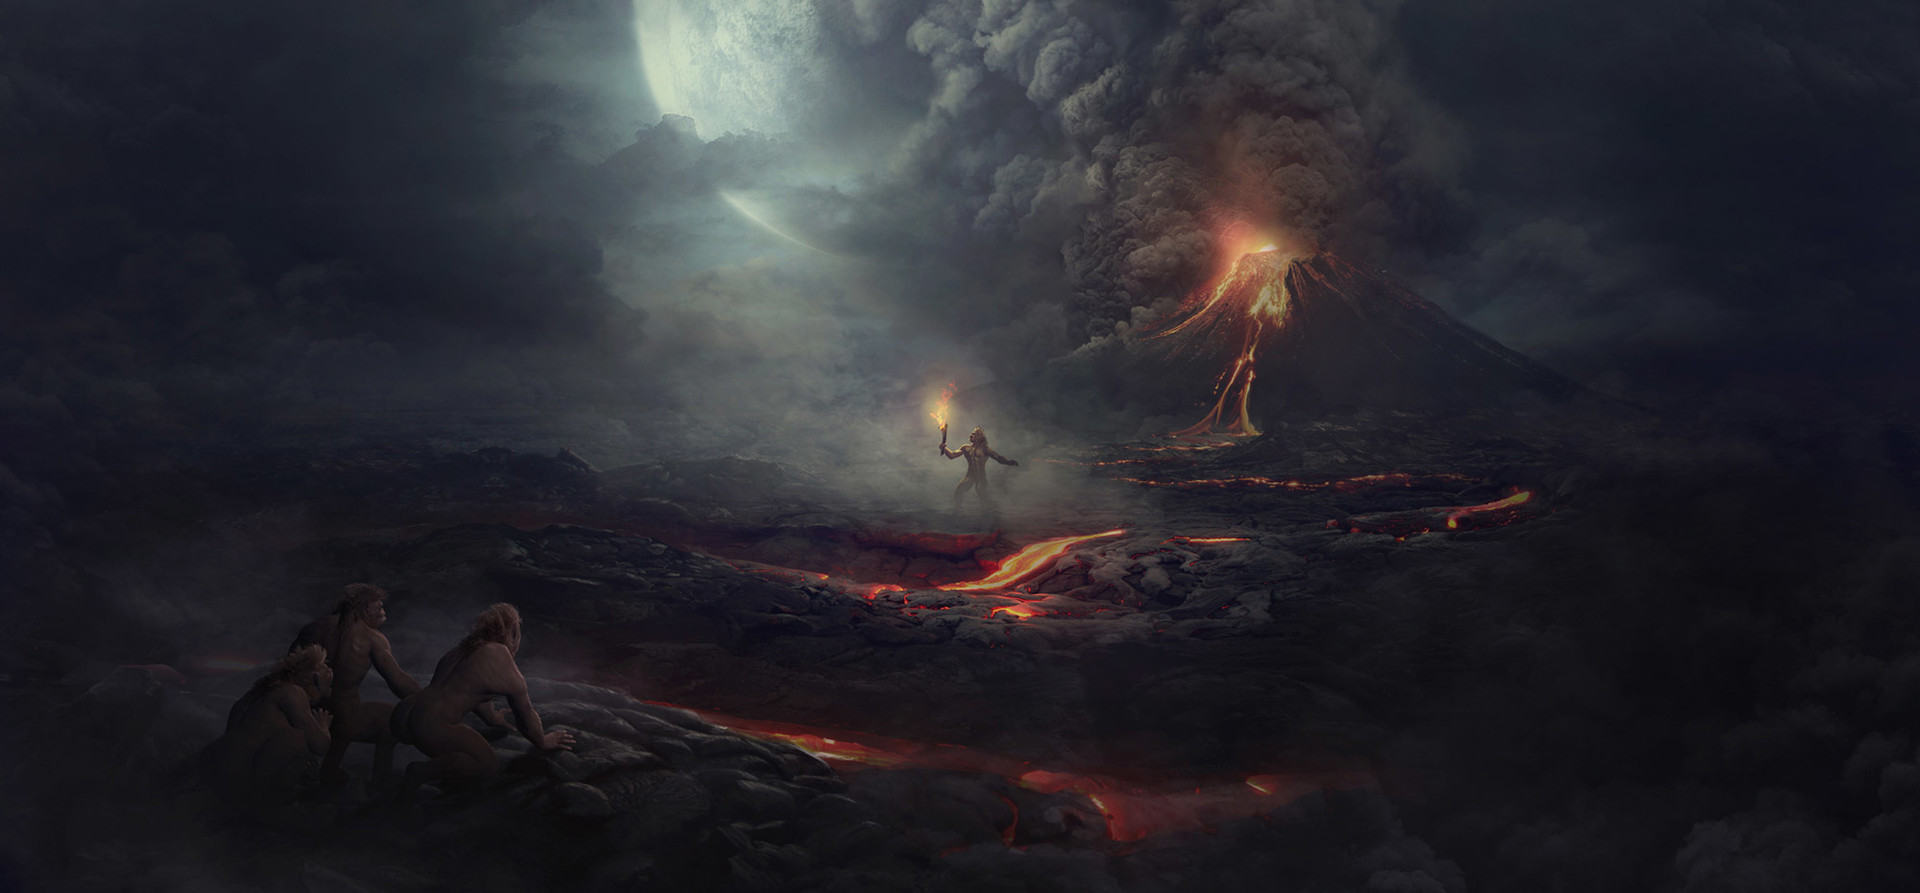 Guillem h pongiluppi guillemhp evolving planet 2